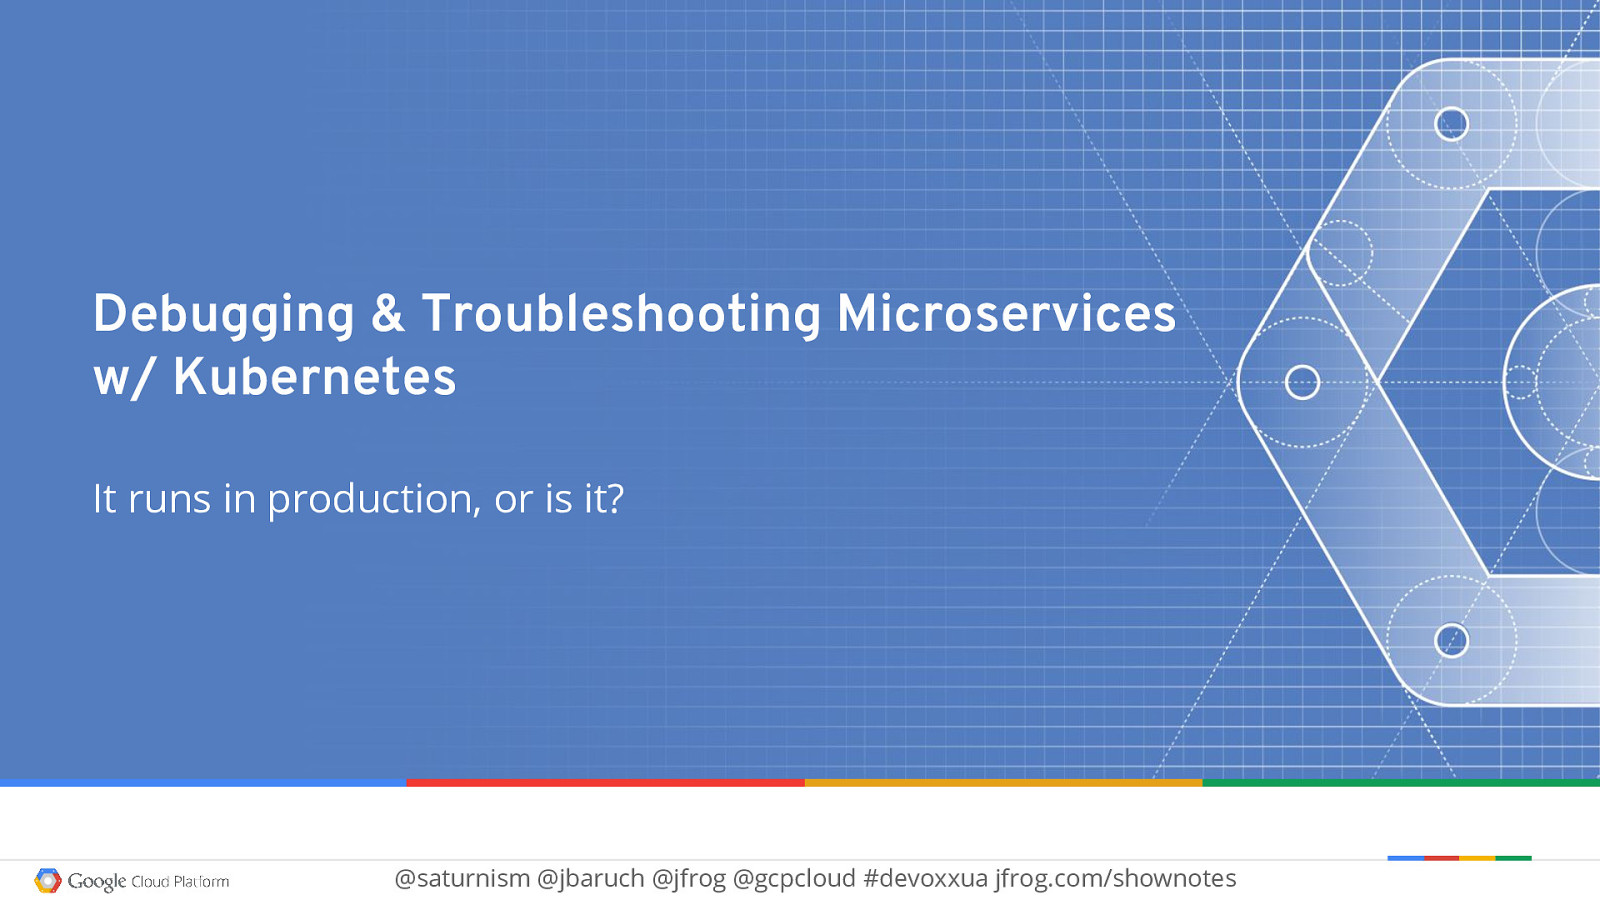 Troubleshooting & Debugging Production Microservices in Kubernetes